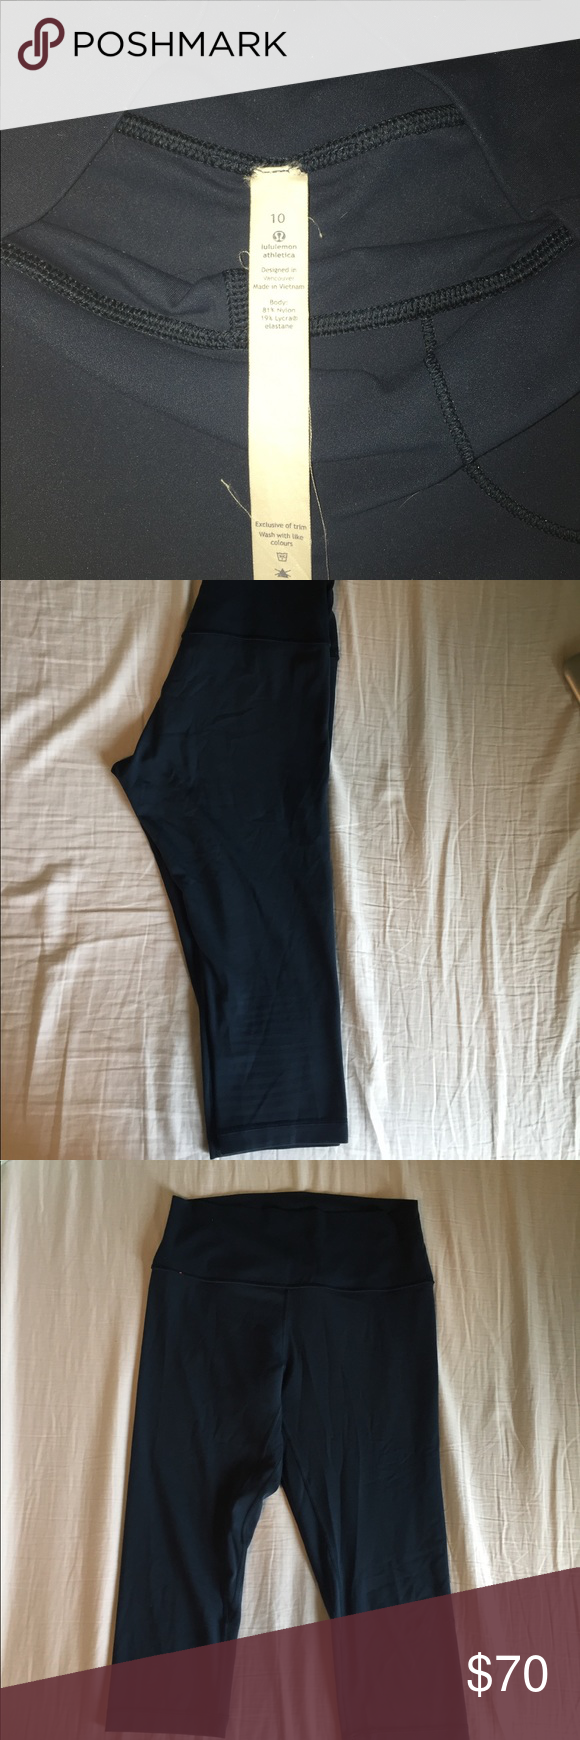 LuLu Lemon Align Crop - Size 10 Selling because I no longer fit into them. Worn maybe 4 times. Love the color of them, it's a dark blue. On the lower left leg there is a tiny hole, I snagged it on my car.  Other than that, LOVE the fit of them and they've been a great legging! lululemon athletica Pants Ankle & Cropped